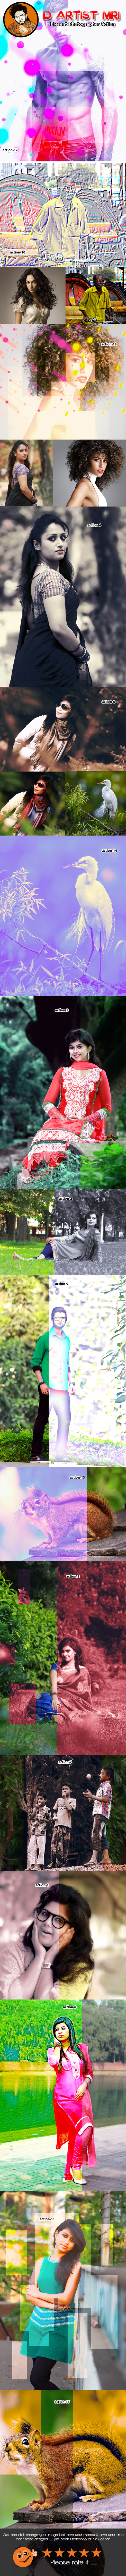 Photographer Action - Actions Photoshop